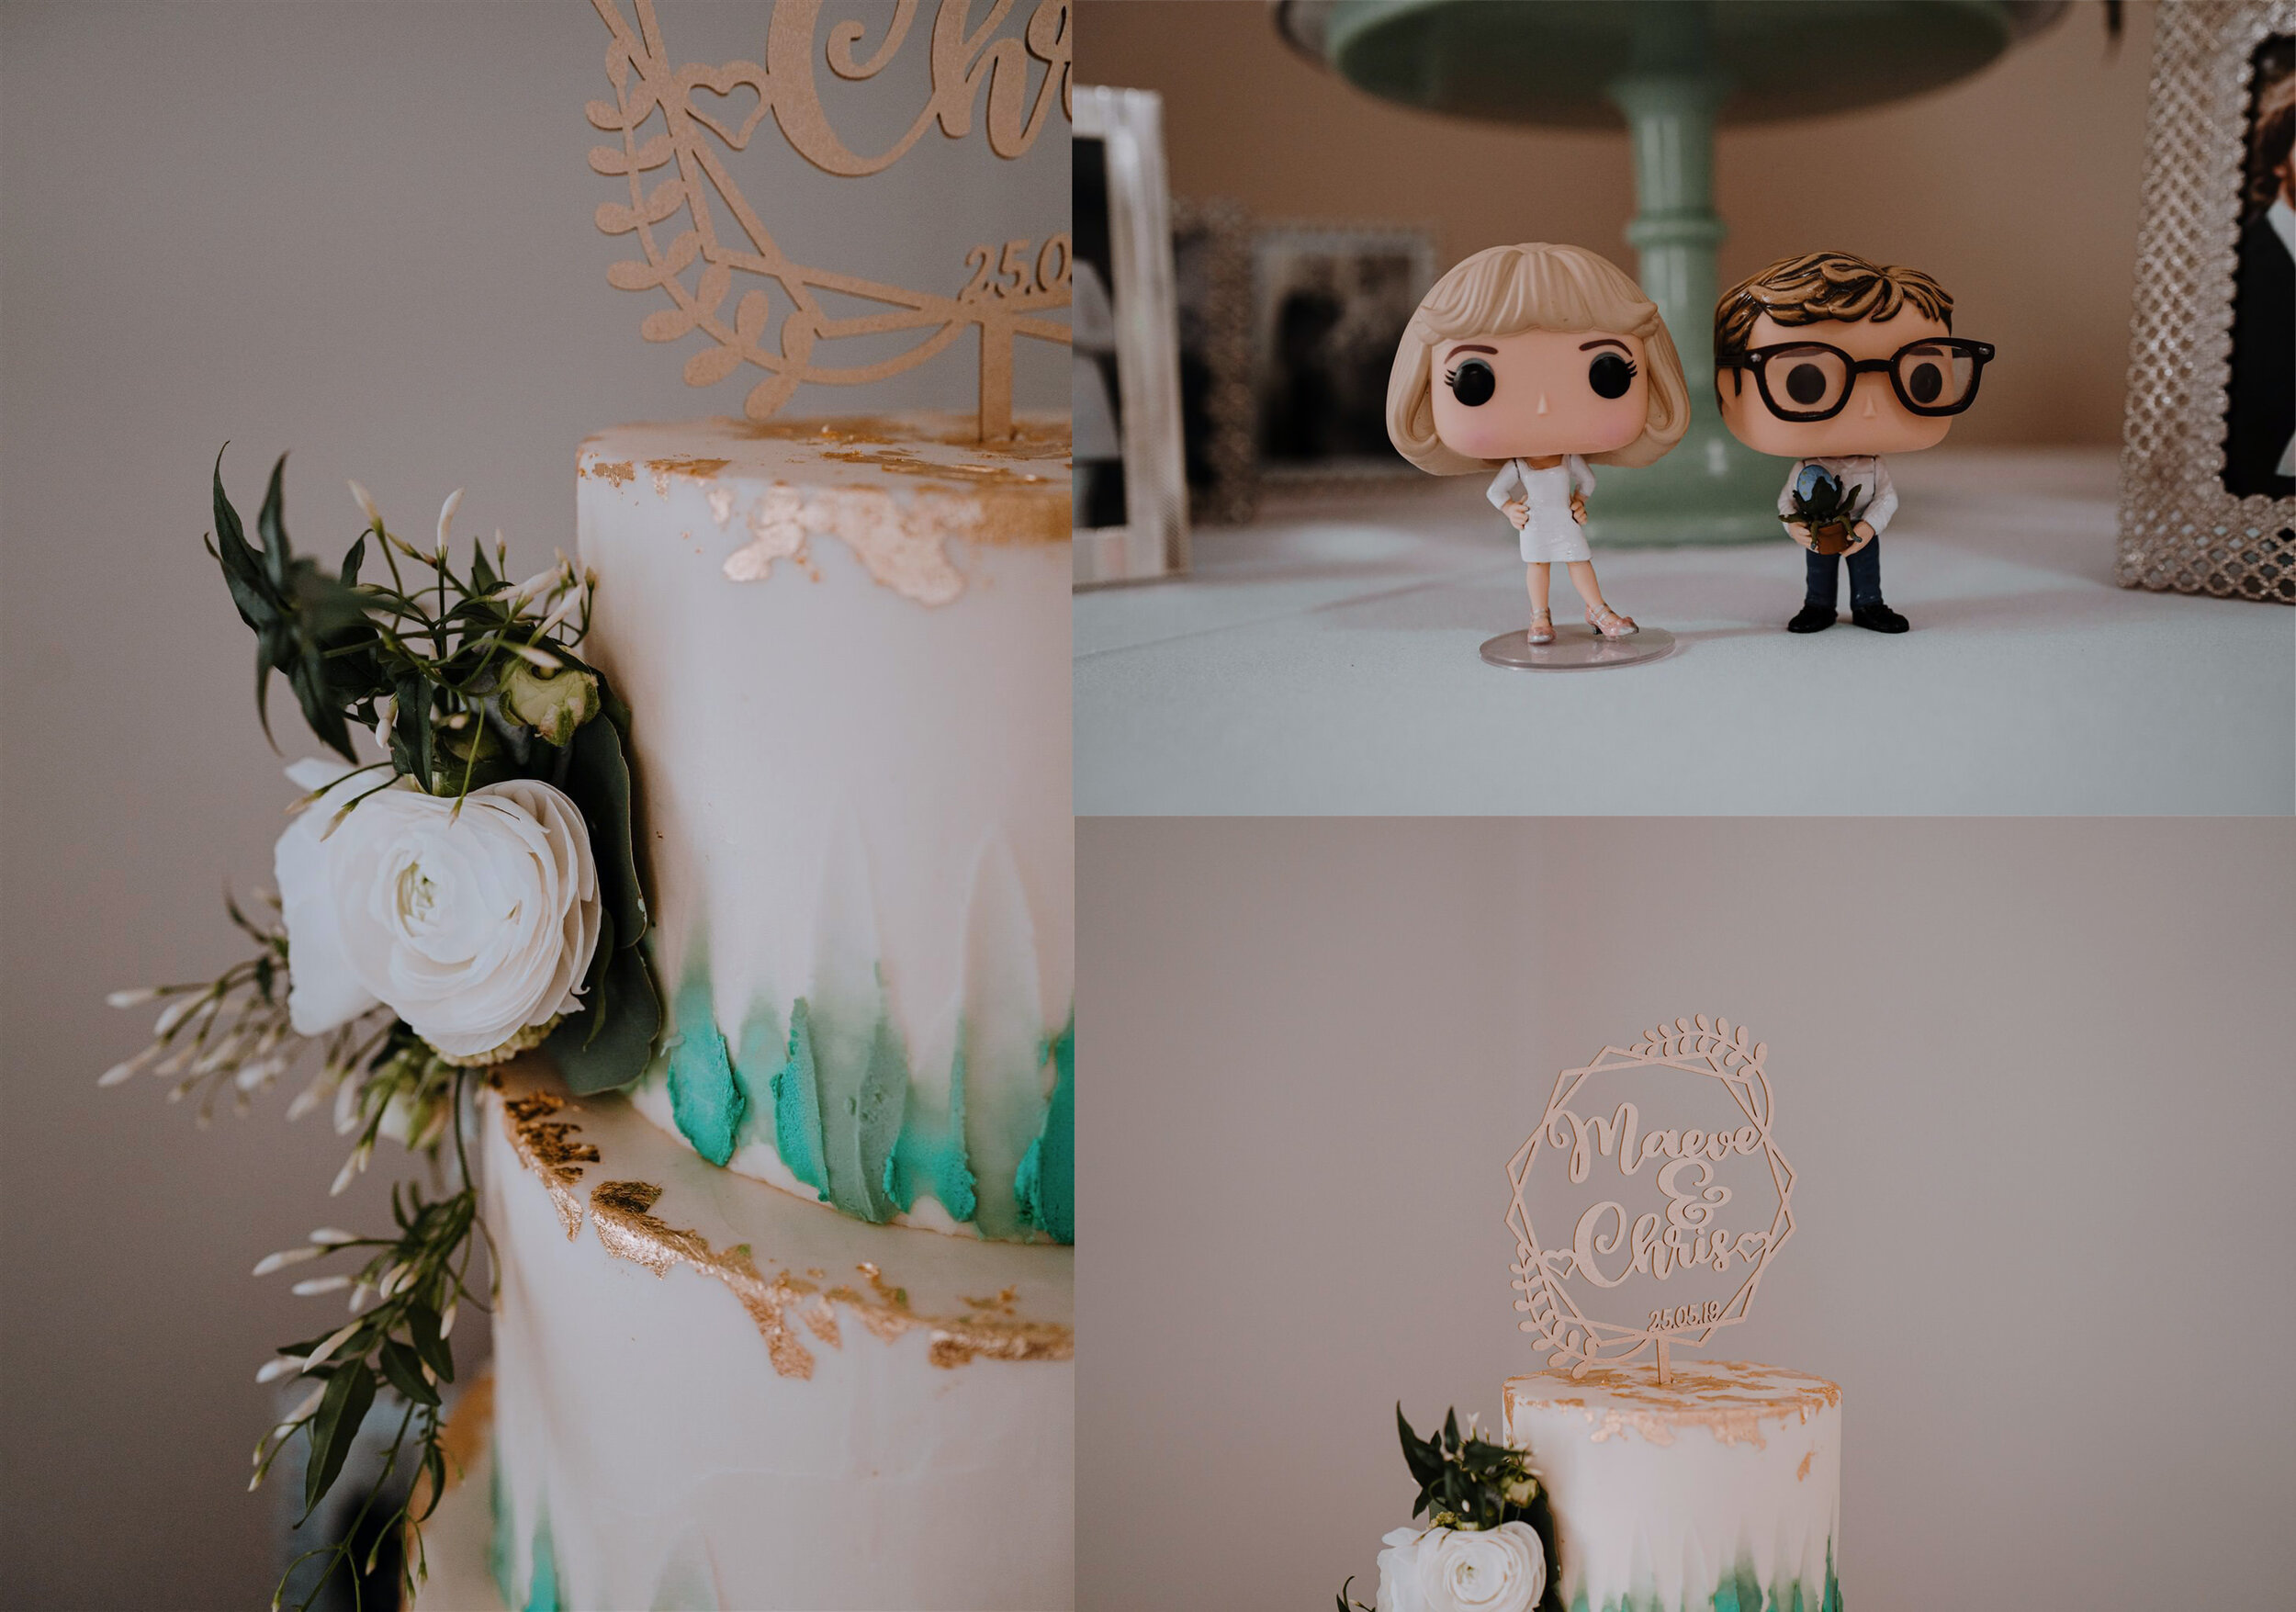 Lly pink bakery Northern Ireland white teal weddimg cake custom pop figures